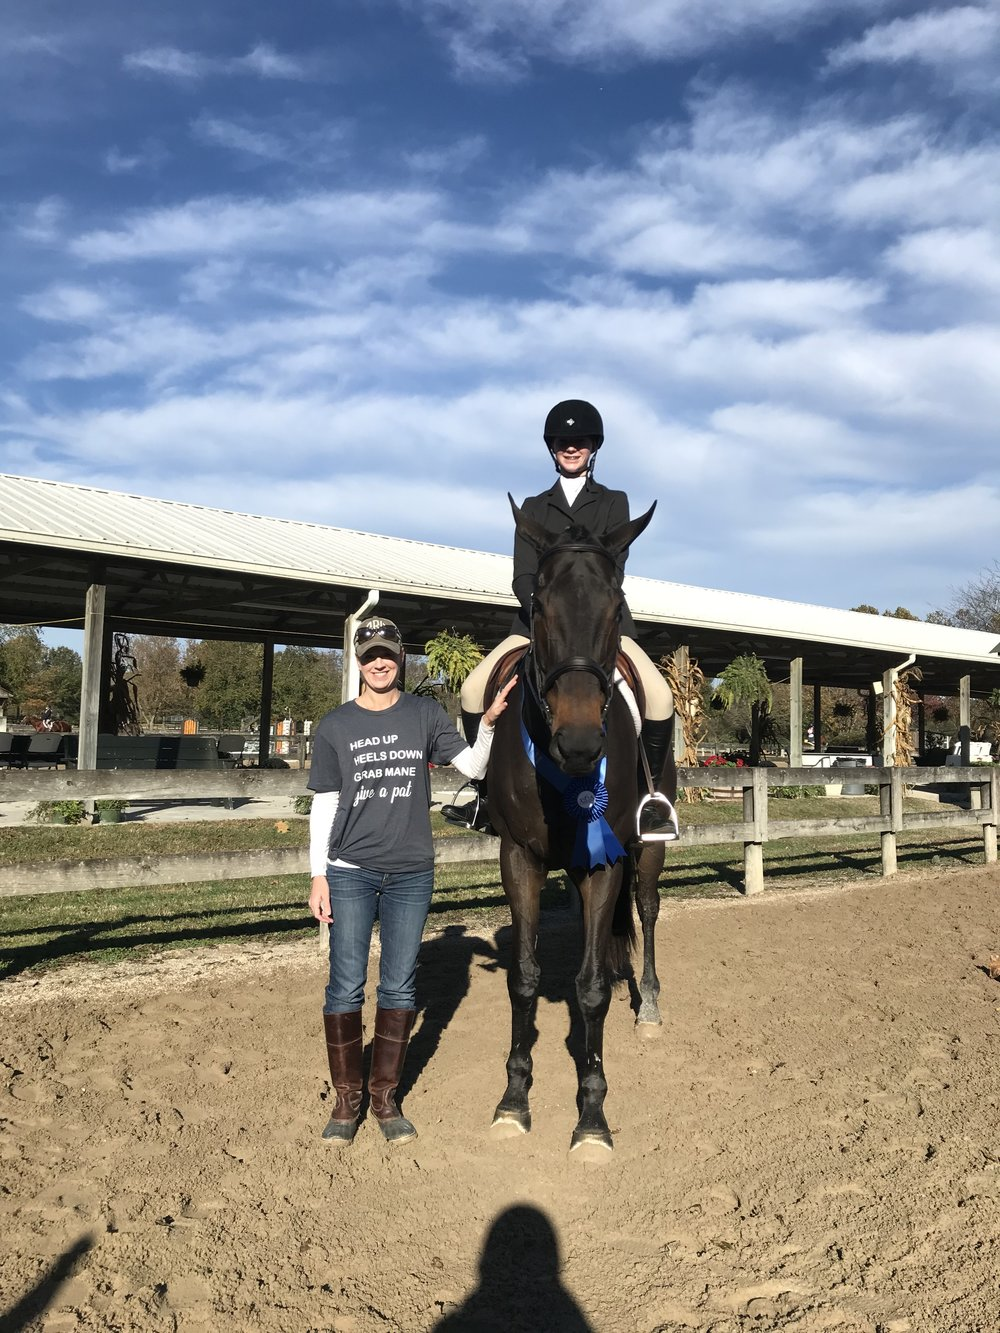 Lillian's mother Mandy wore very appropriate attire for Lillian's equitation win!